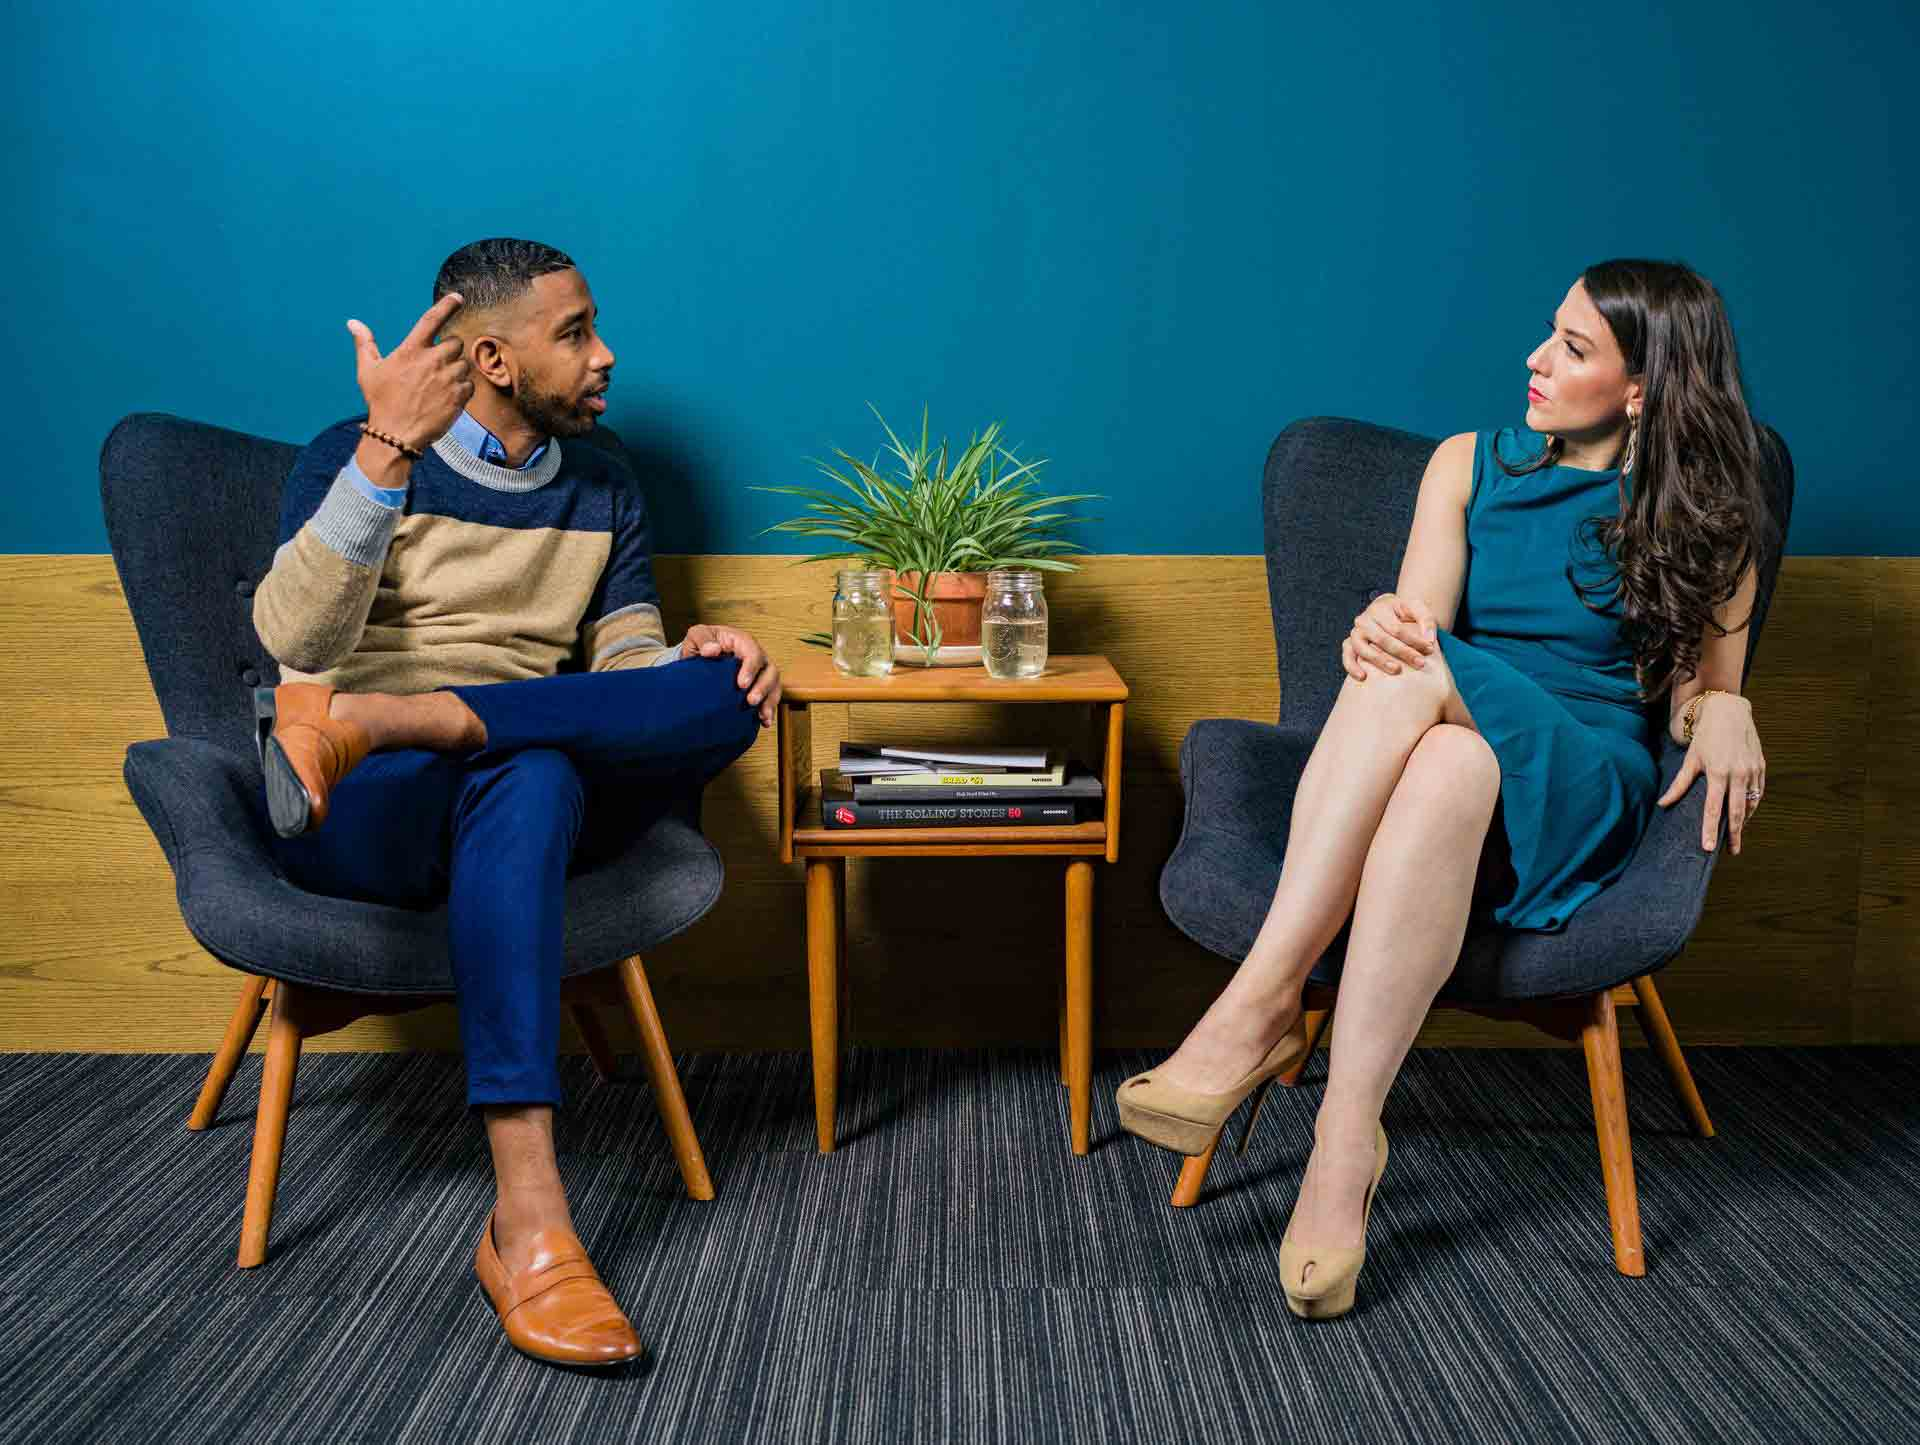 Conflict Resolution in Meetings (With Tips from Jeremy Pollack)